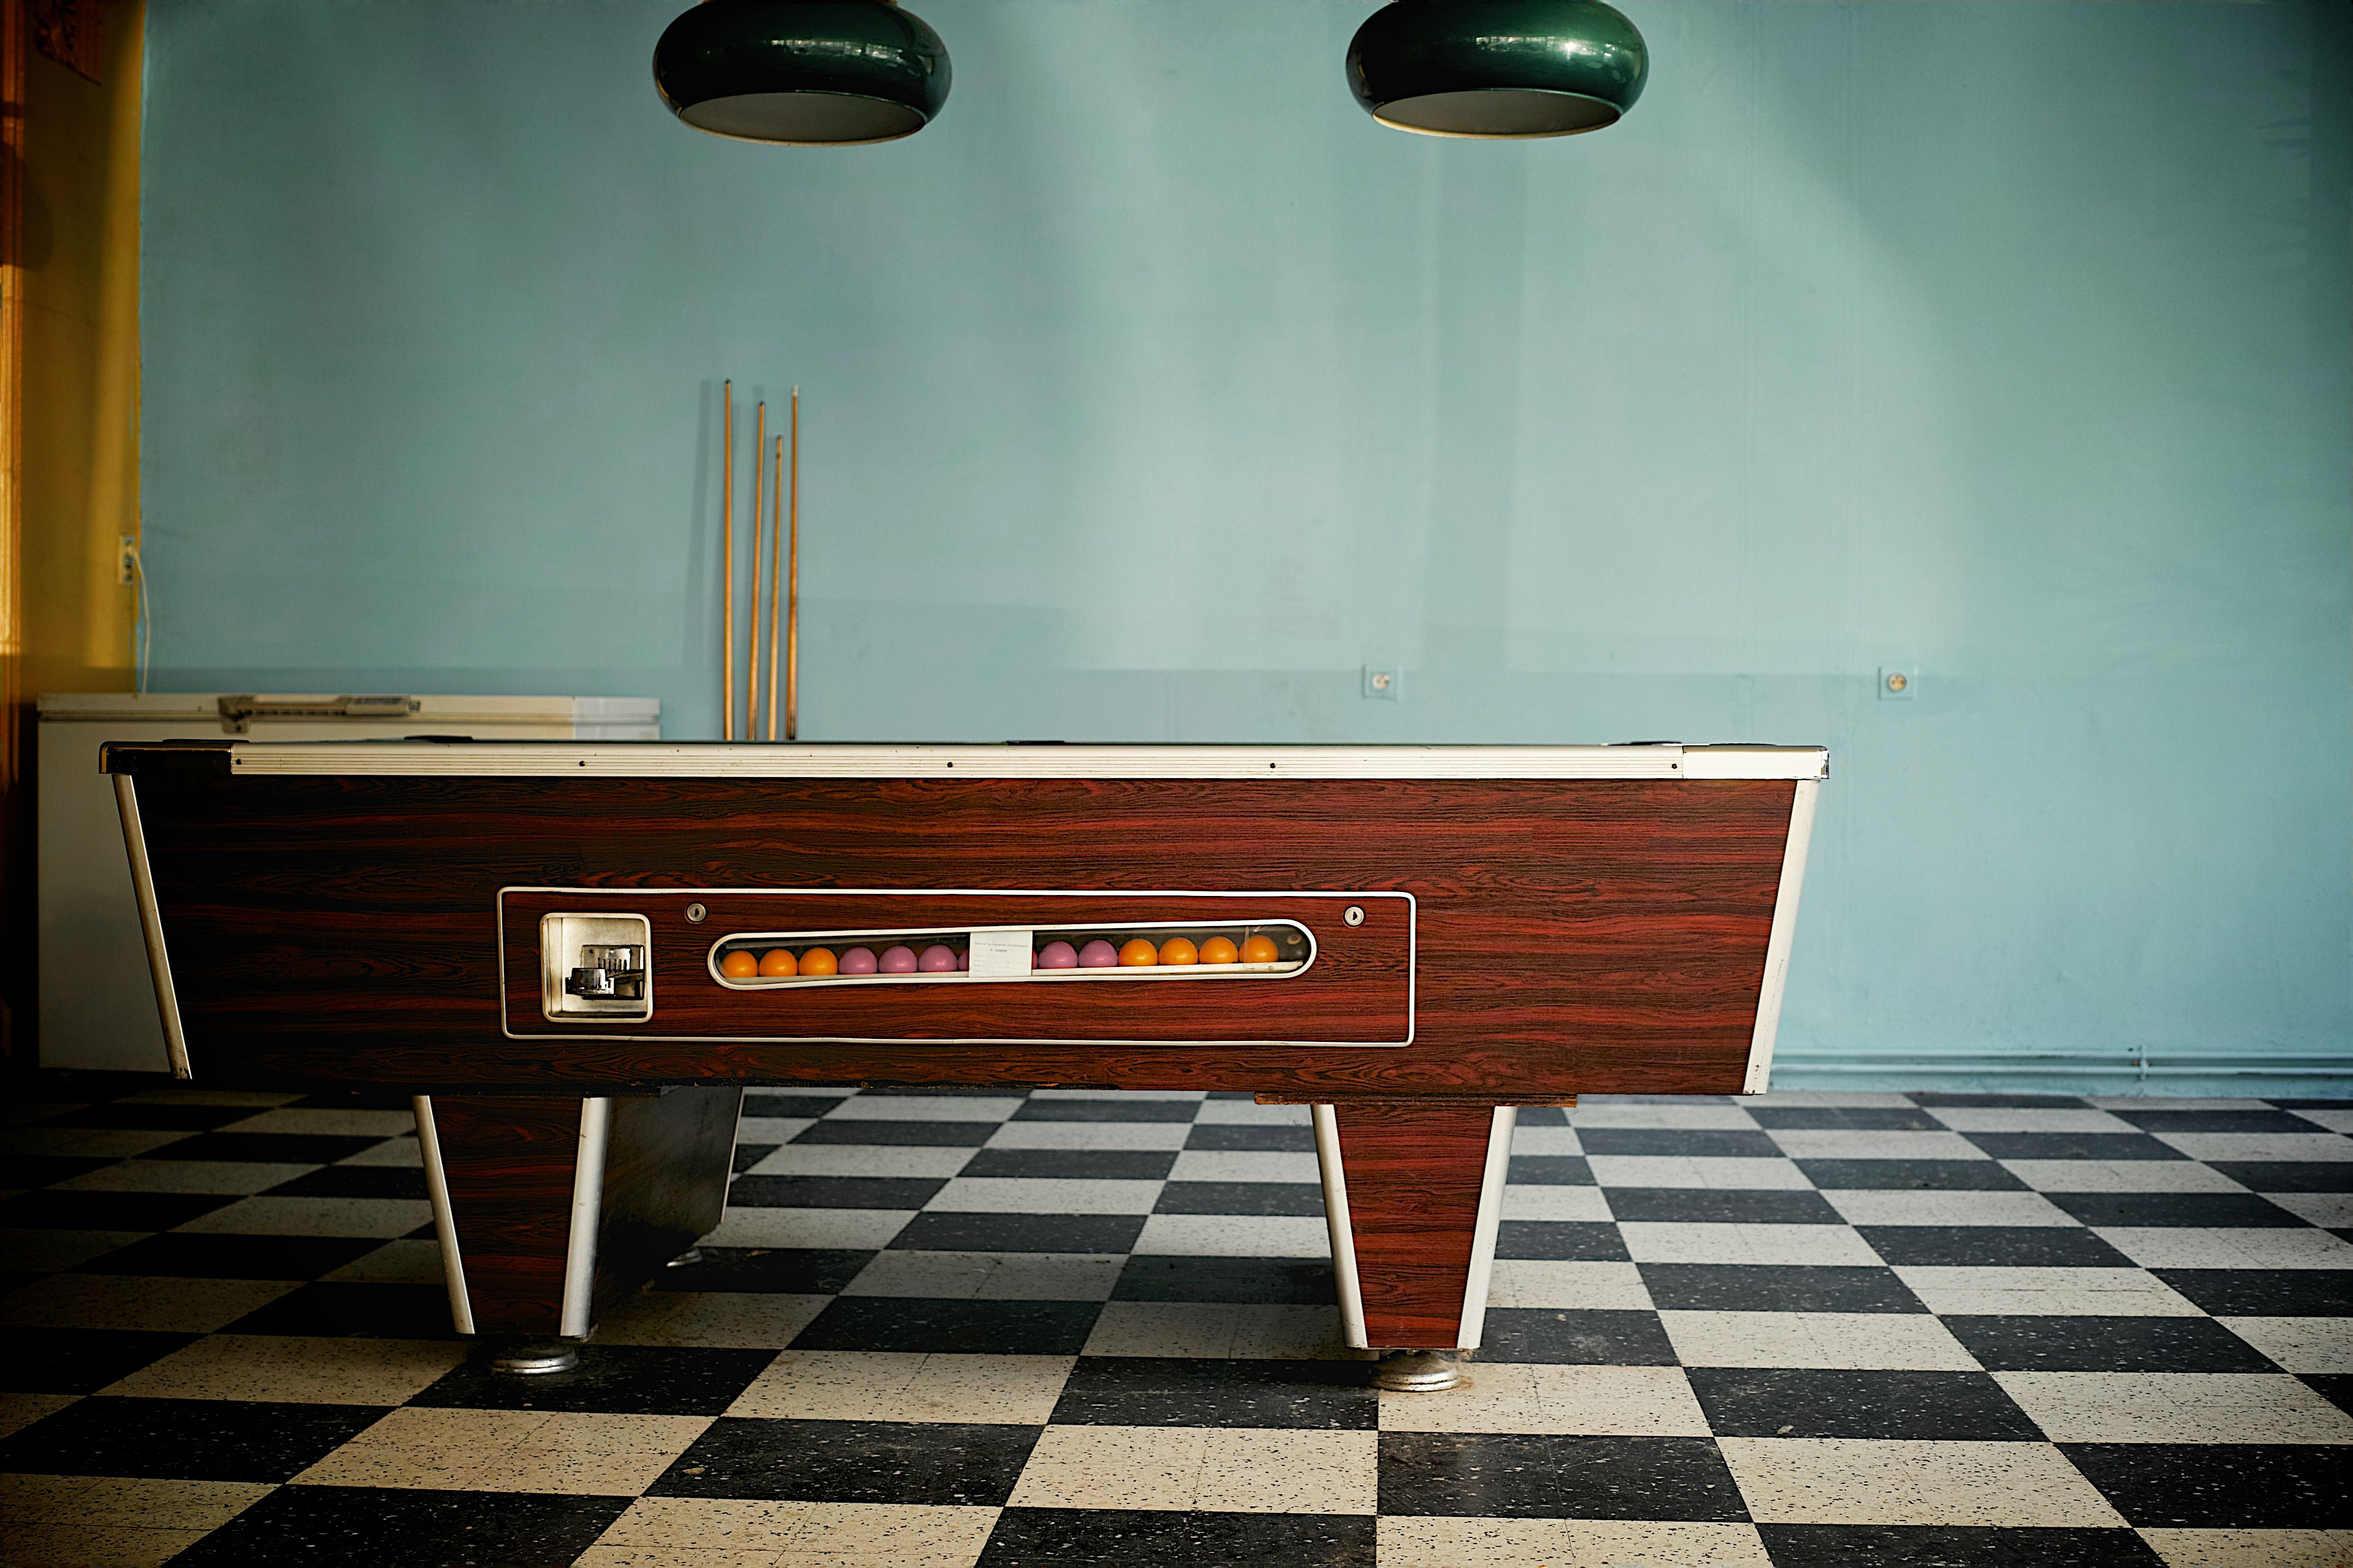 Questions to Ask Before You Buy or Try a Pool Table